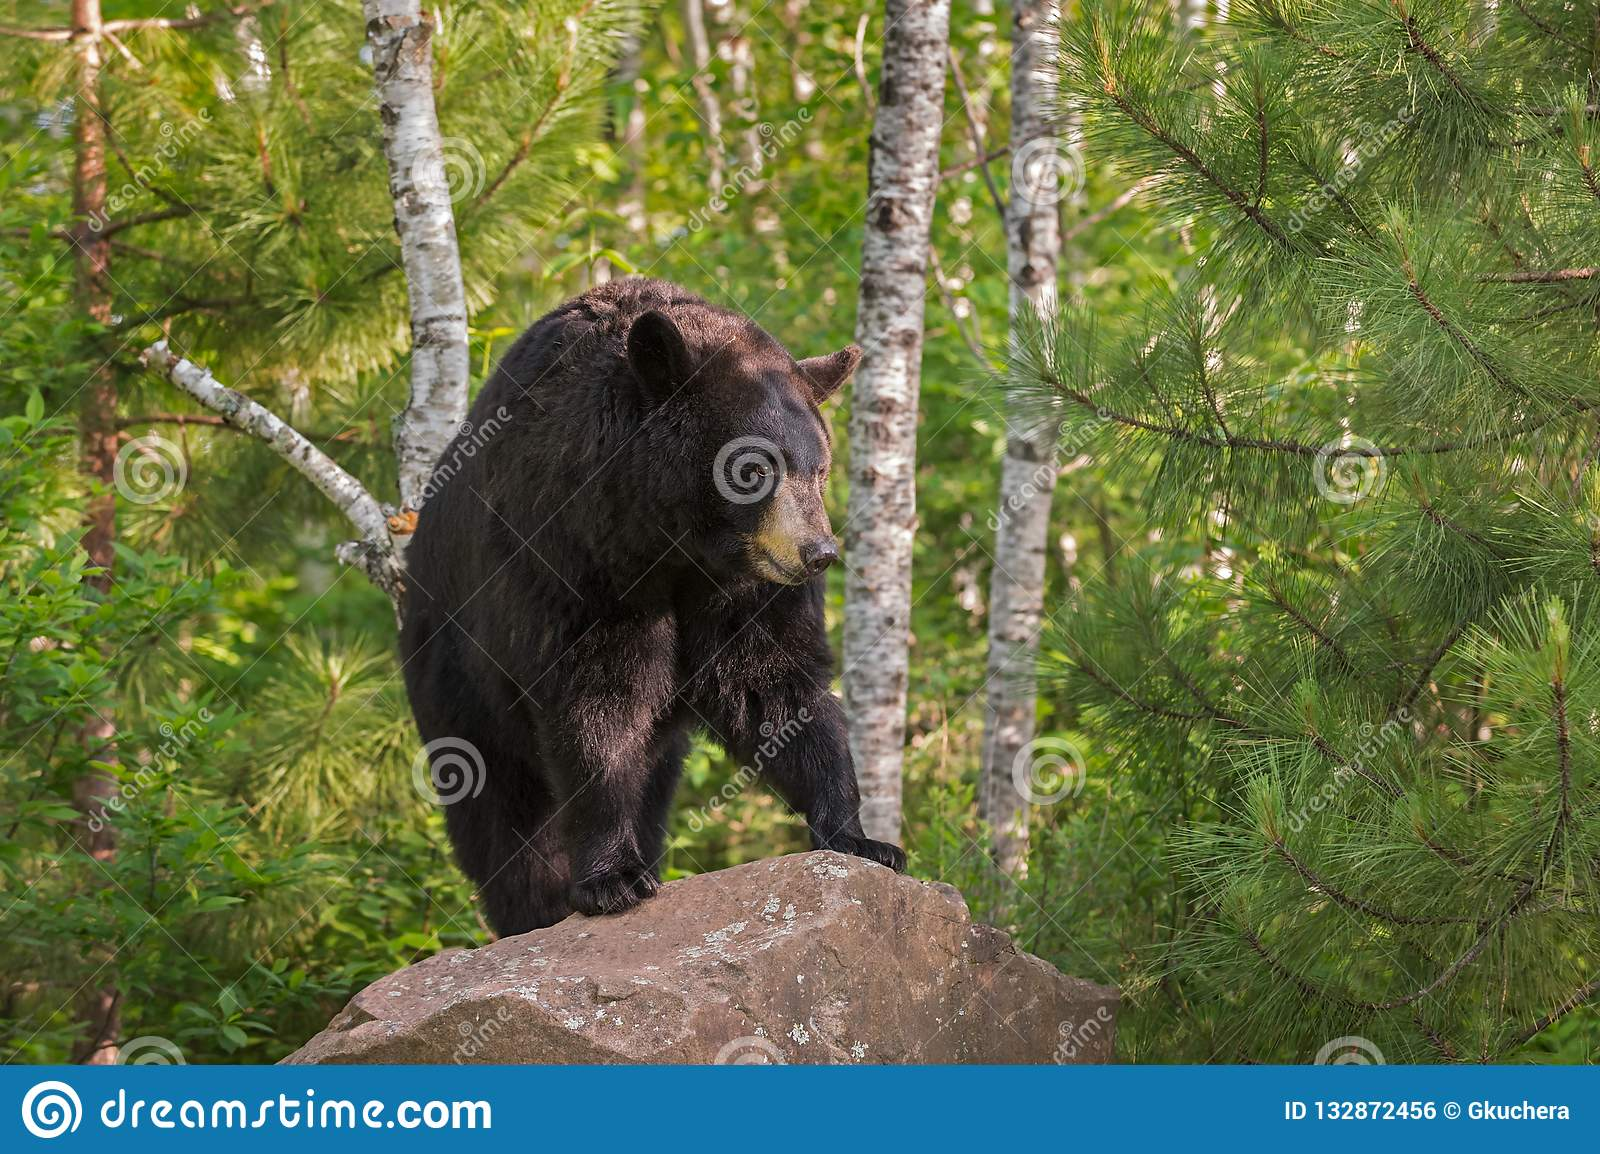 33 068 Black Bear Photos Free Royalty Free Stock Photos From Dreamstime